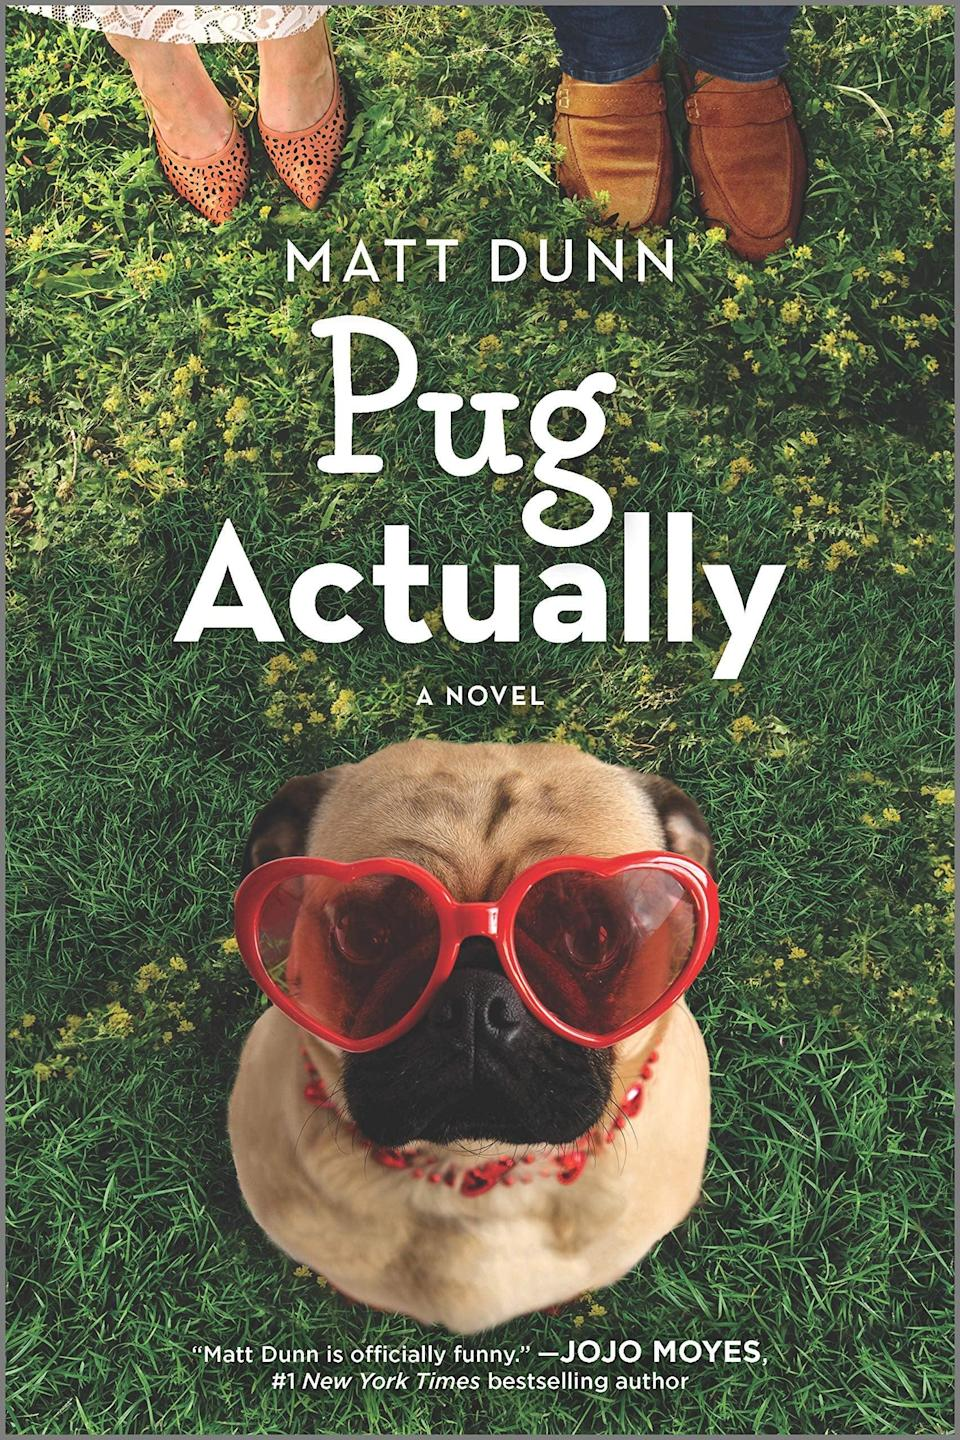 <p>A love story told from the perspective of a pug? Yes, please! In the sweetly funny <span><strong>Pug Actually</strong></span> by Matt Dunn, the wise Doug plays matchmaker for Julie, his beloved rescuer who keeps making terrible romantic decisions. Doug is determined to steer Julie away from her married boss and into the arms of the recently divorced Tom.</p> <p><em>Out June 29</em></p>